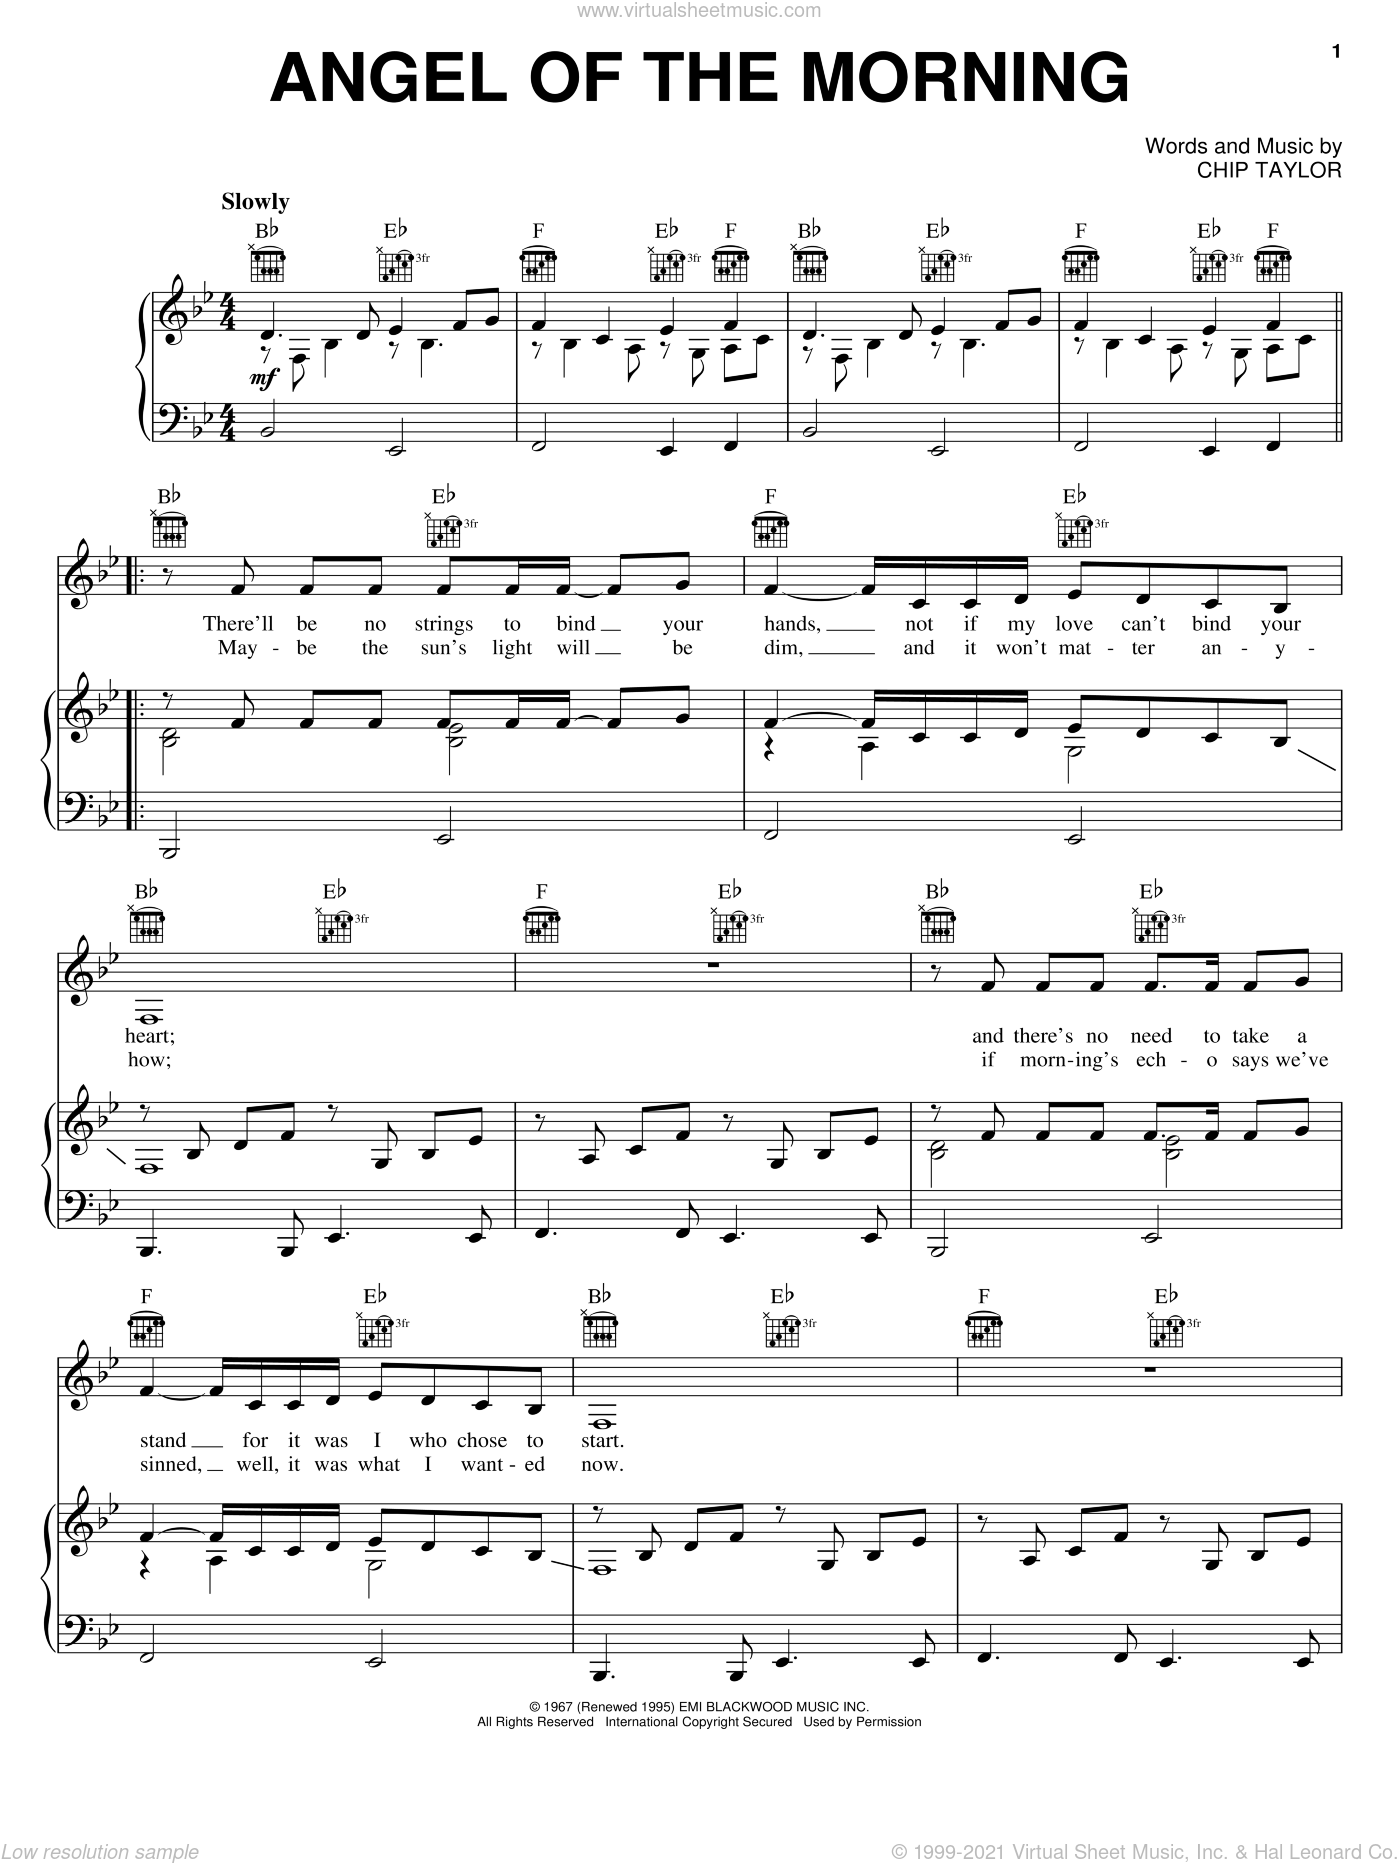 Angel Of The Morning sheet music for voice, piano or guitar by Juice Newton, Merrilee Rush, Merrilee Rush & The Turnabouts and Chip Taylor, intermediate skill level